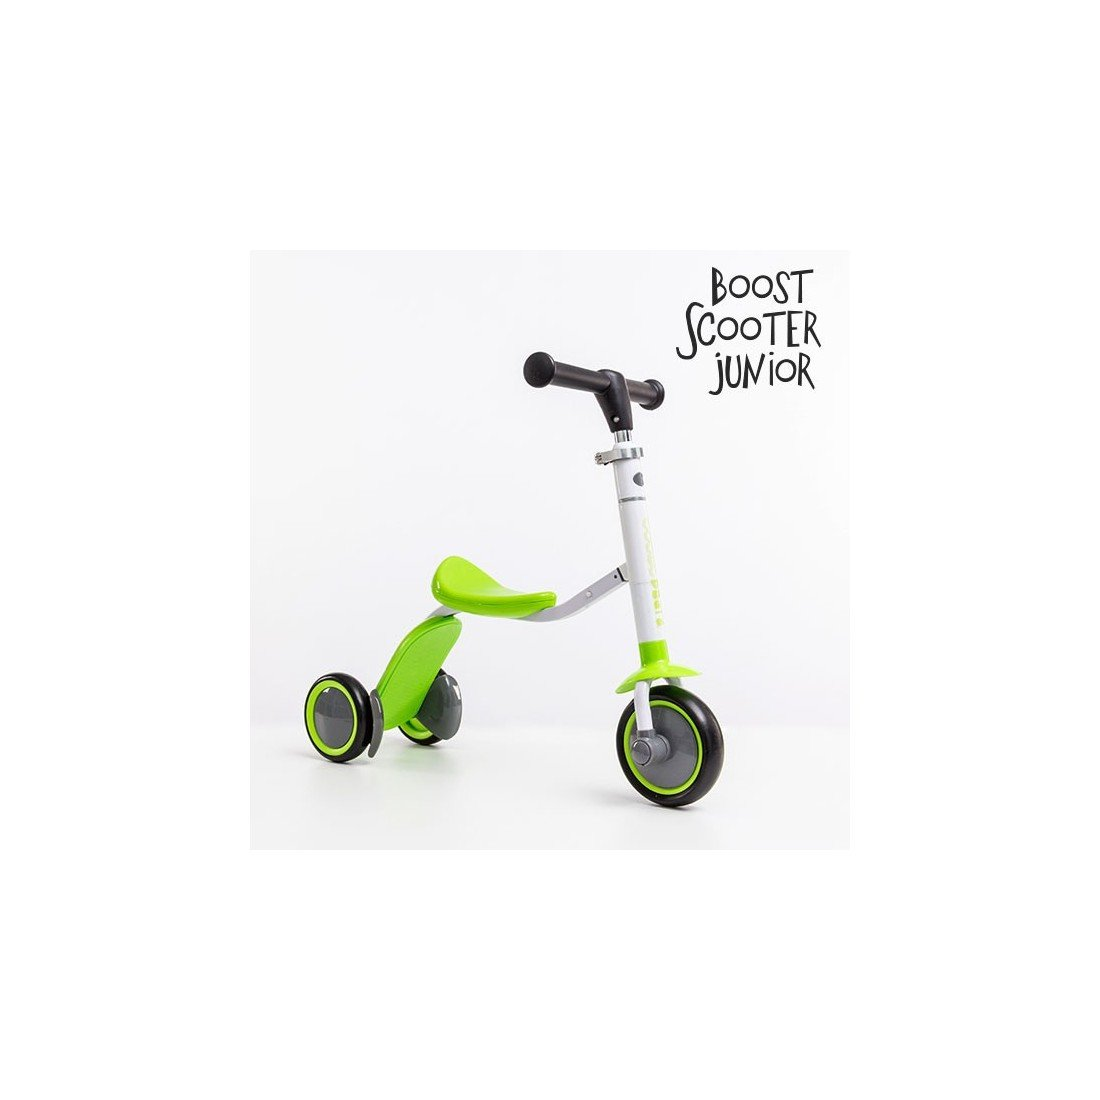 Apolyne - Patinete-Triciclo Boost Scooter Junior 2 en 1, 3 Ruedas, Patinete para Niño